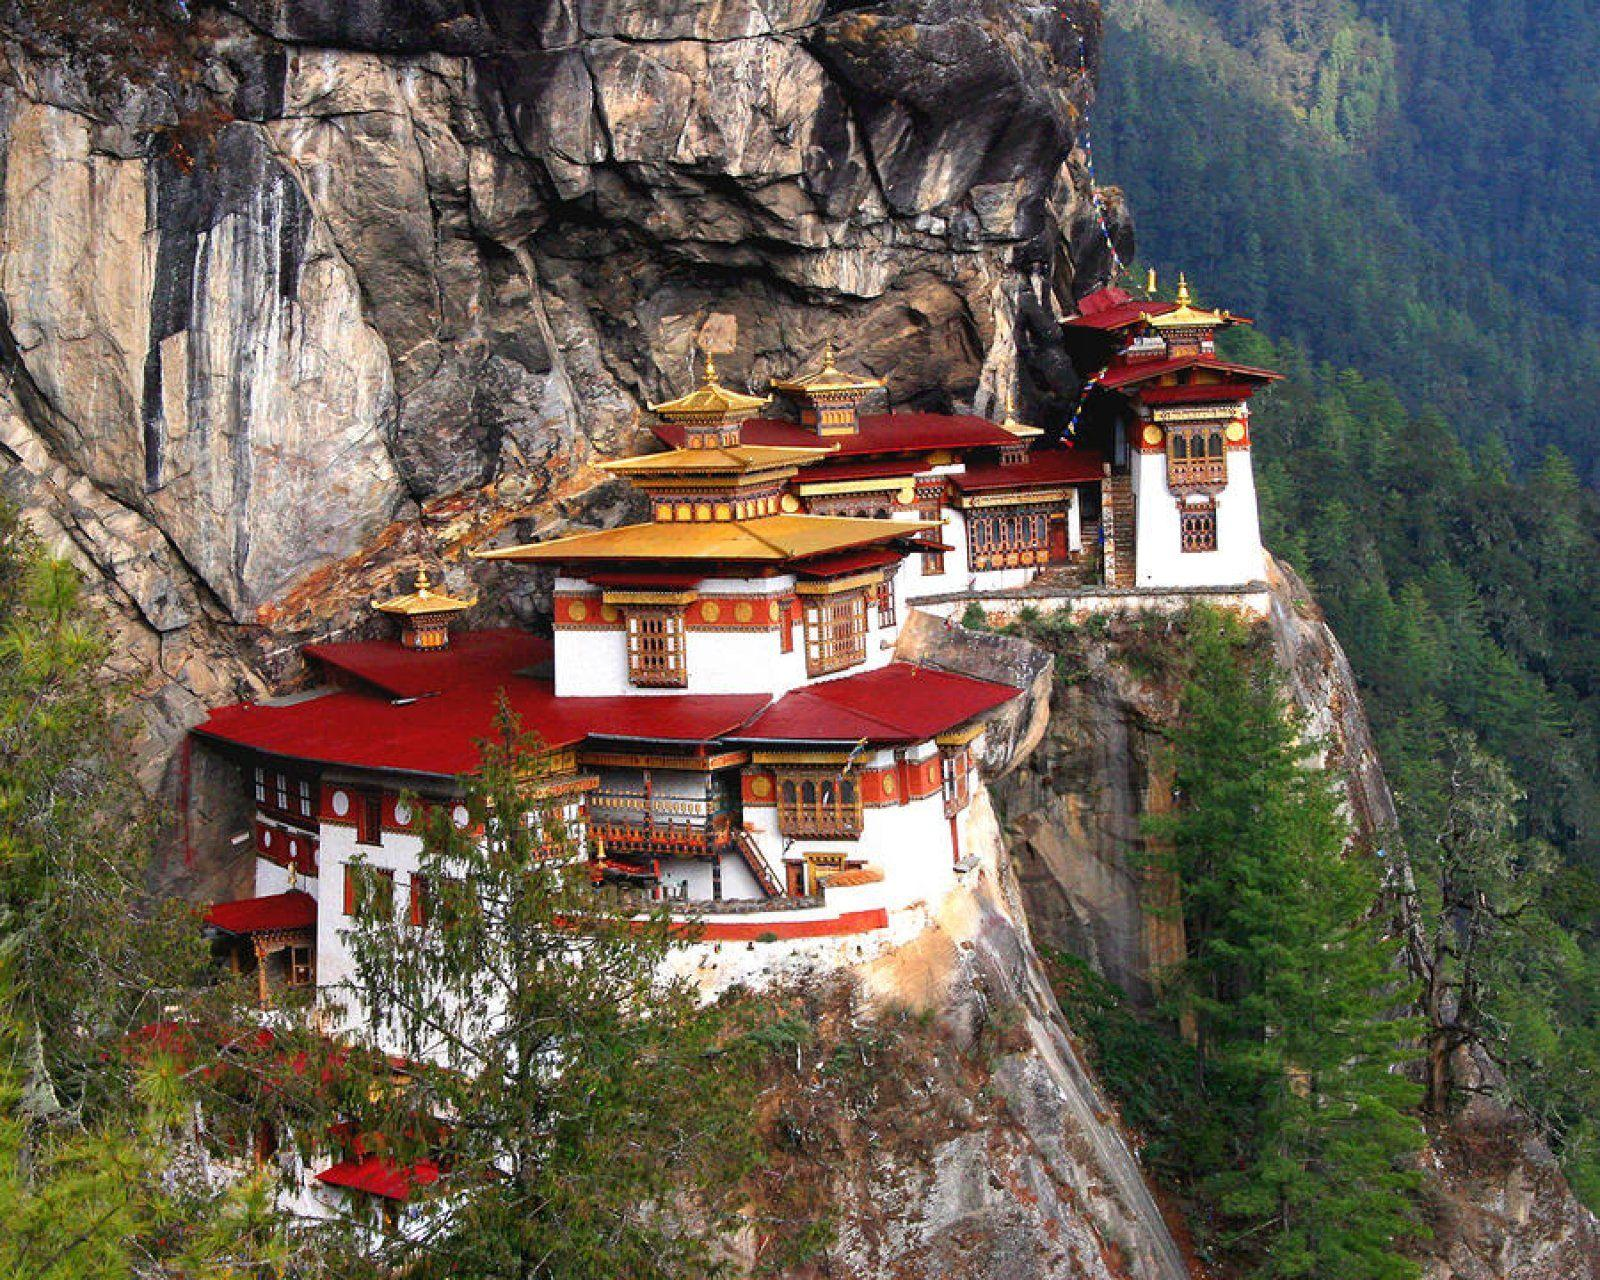 BHUTAN: Glimpse of Bhutan - 5 days